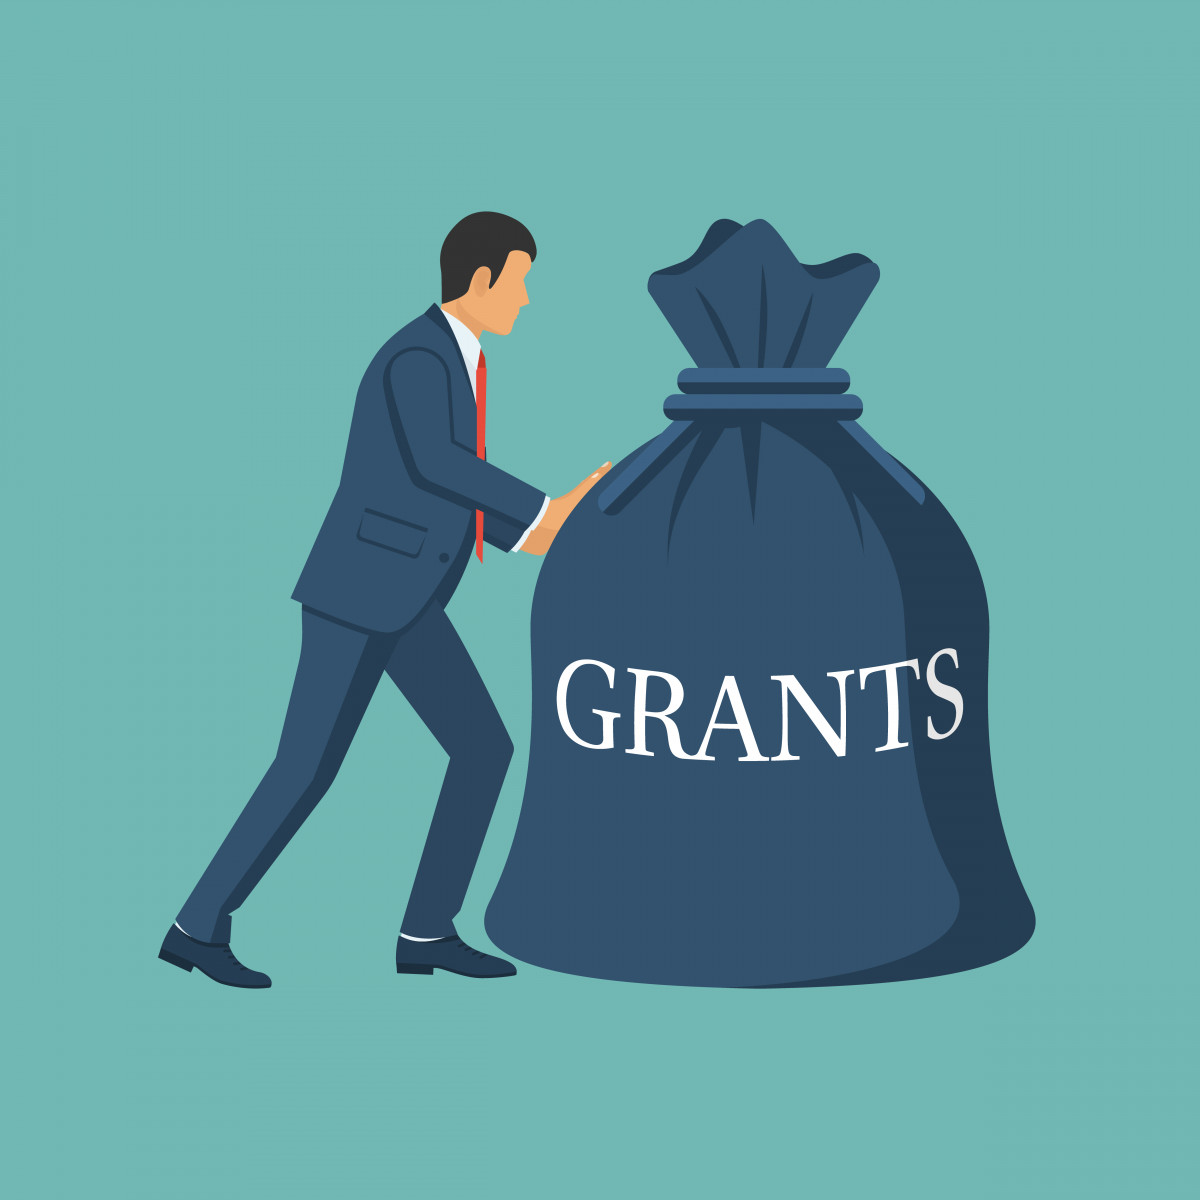 Advocacy for Impact grants